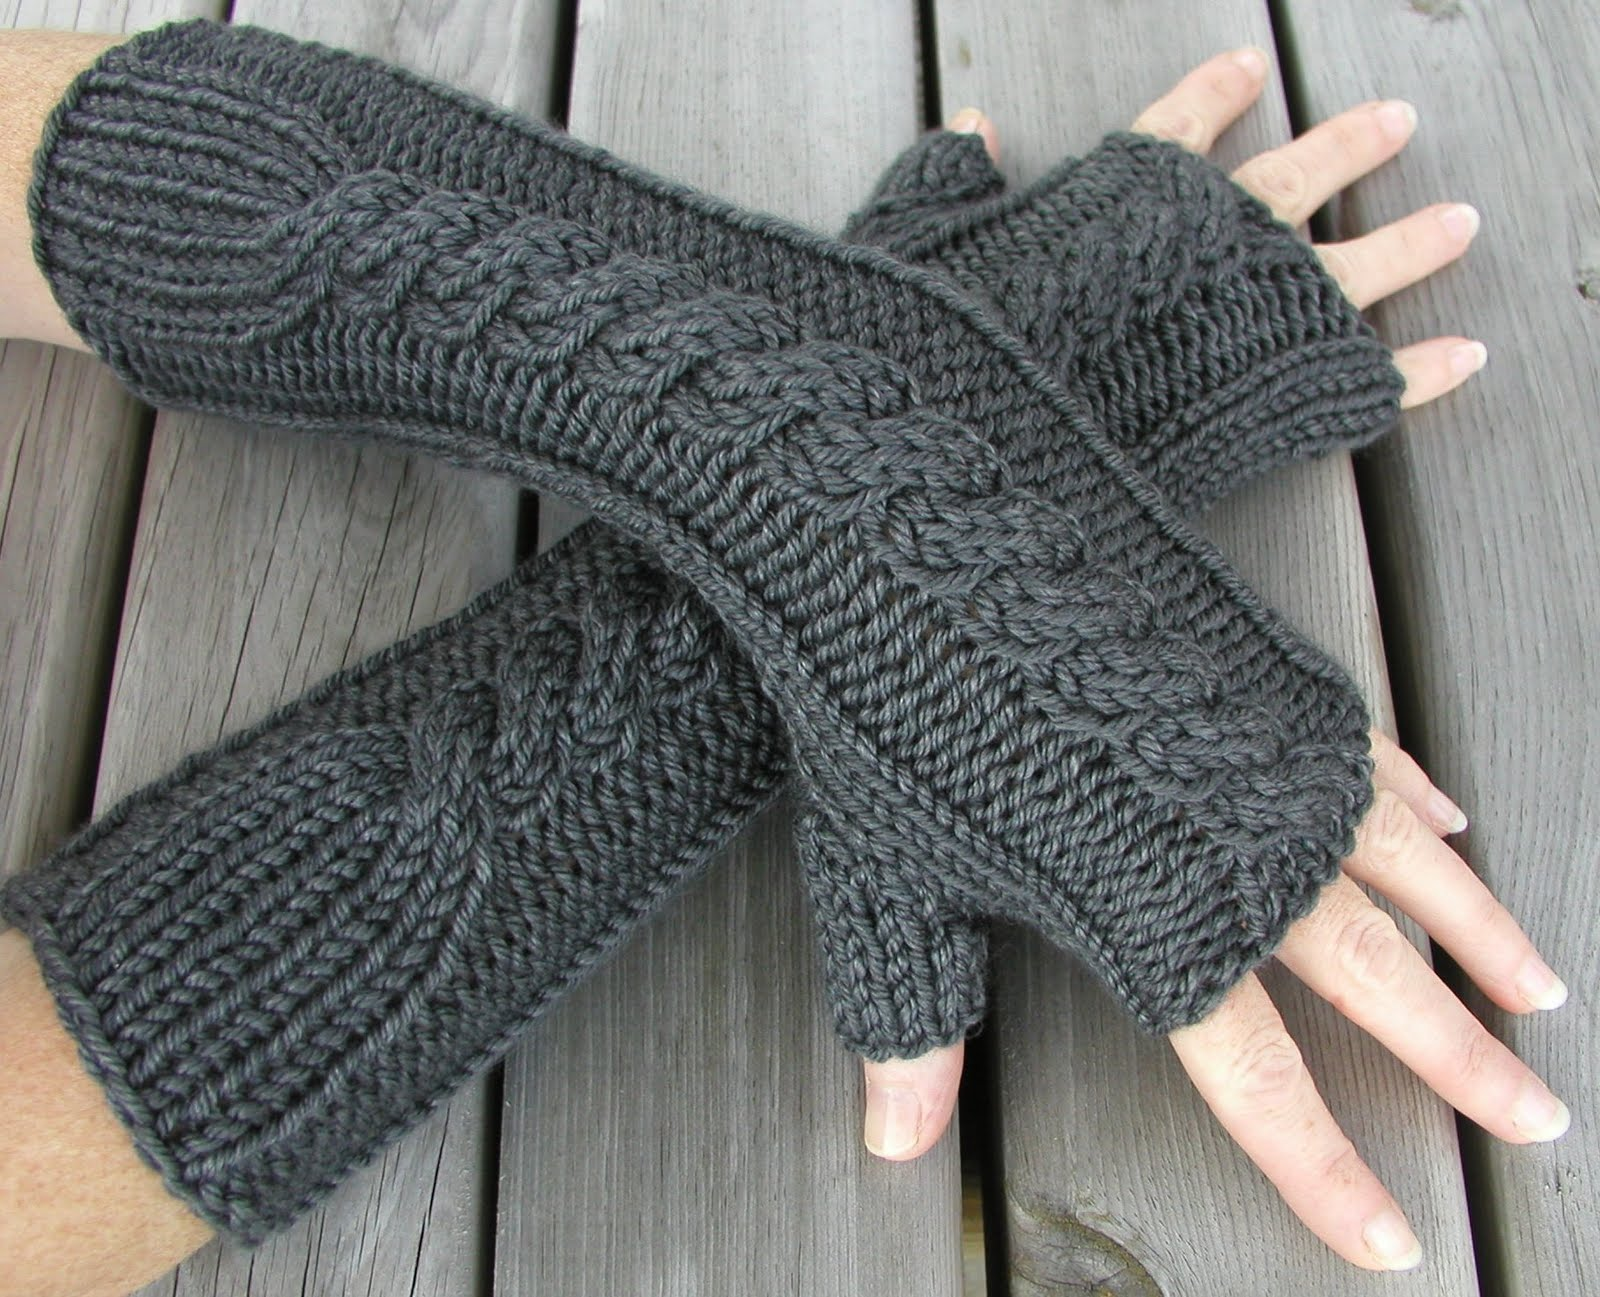 Knit Fingerless Gloves Pattern : Hand Knitted Things Patterns